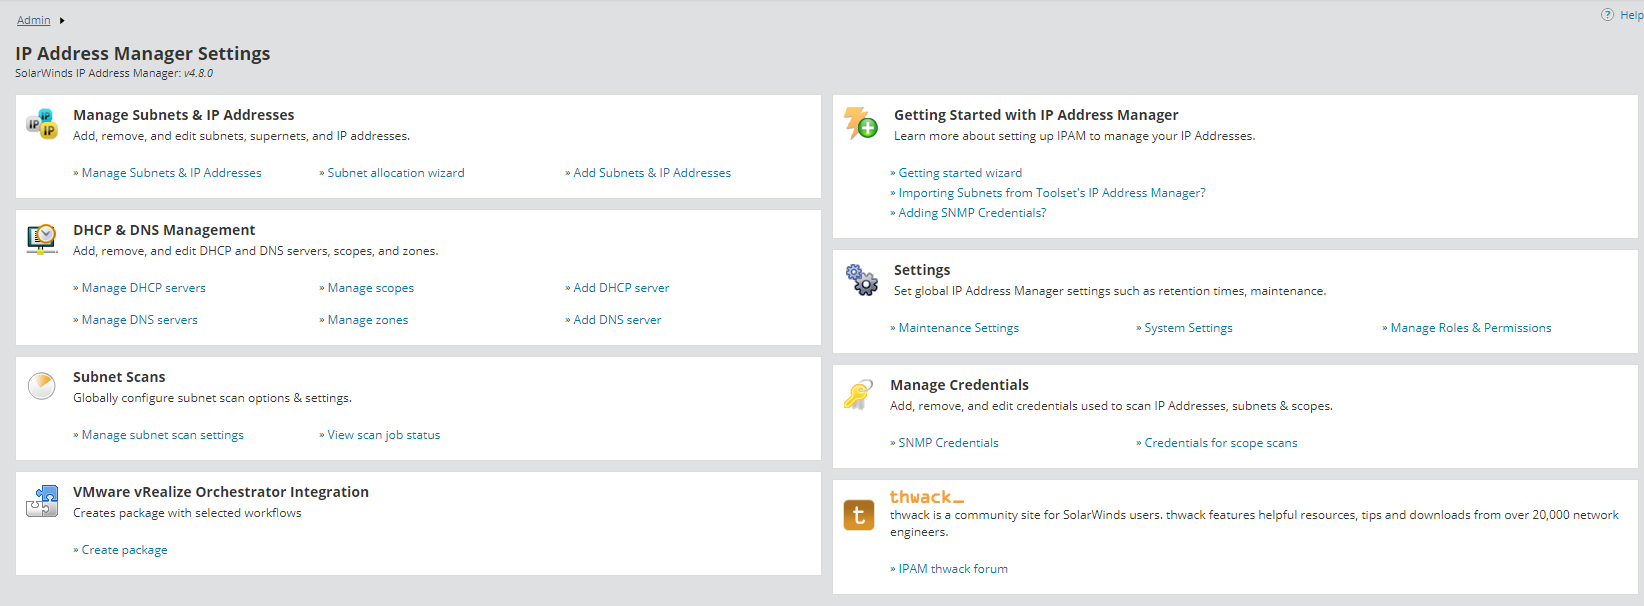 Integrate IPAM with VMware vRealize Orchestrator